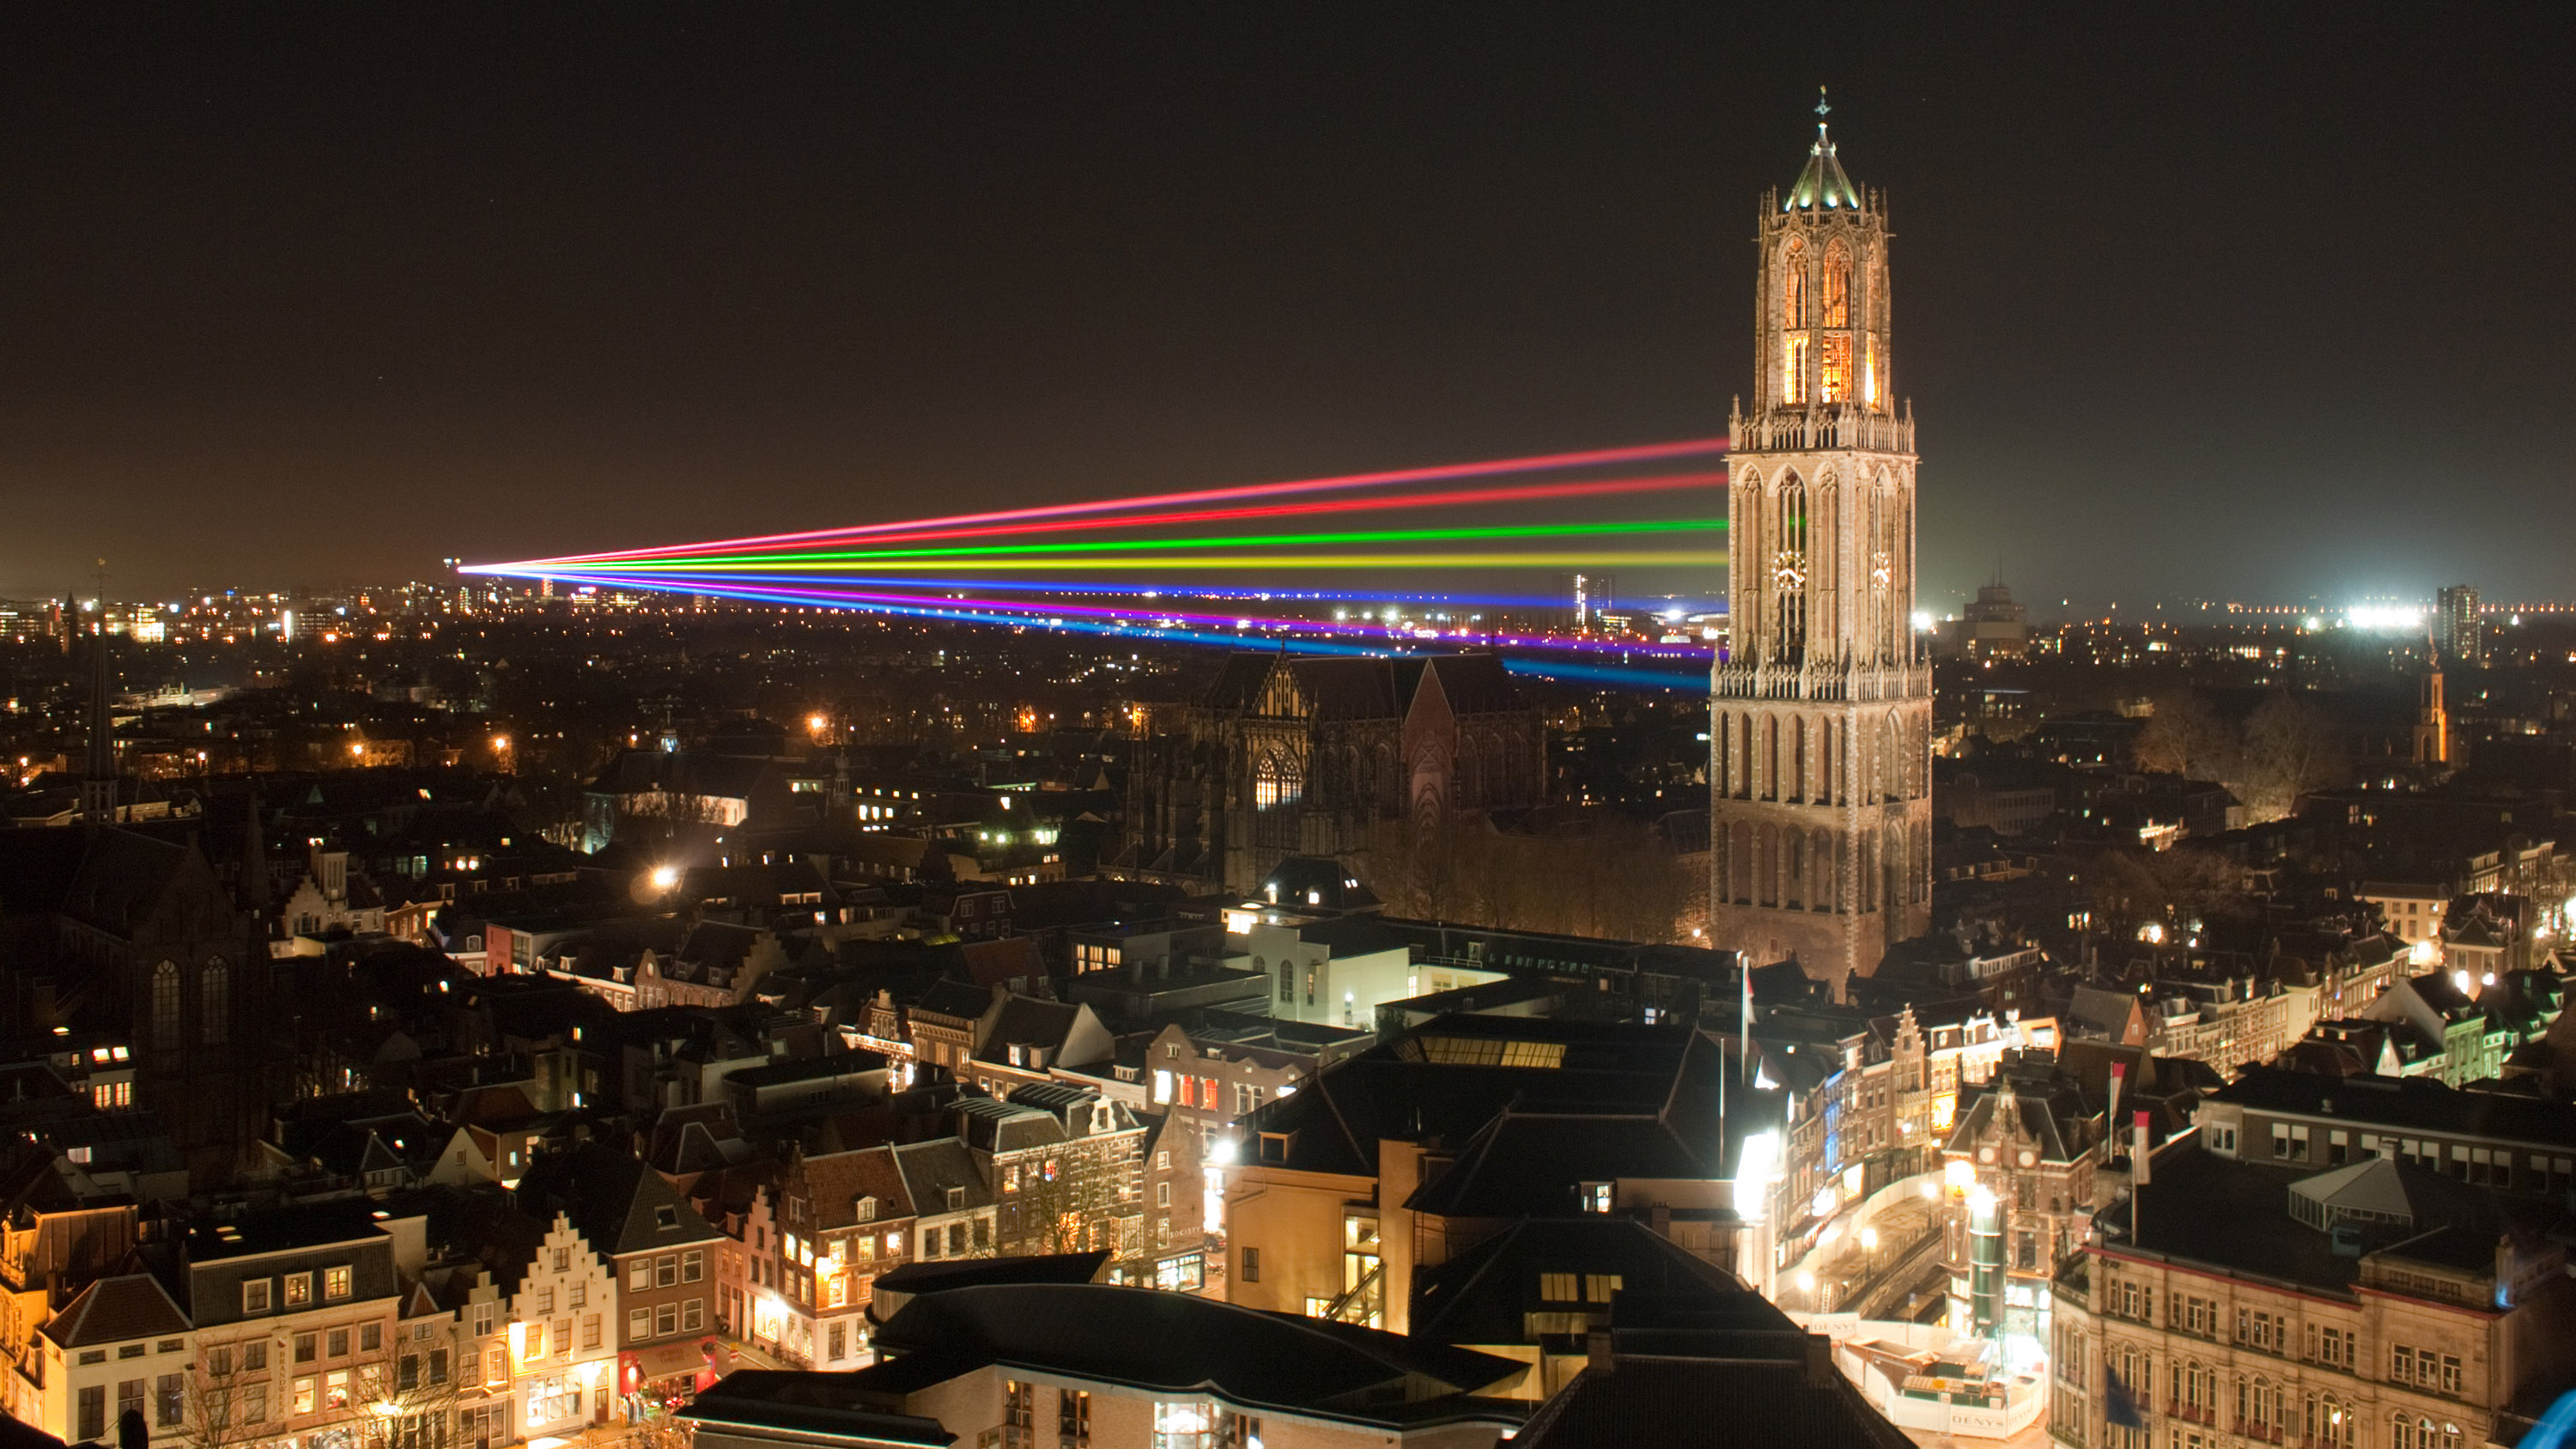 View of the Dom Tower in Utrecht, Netherlands.